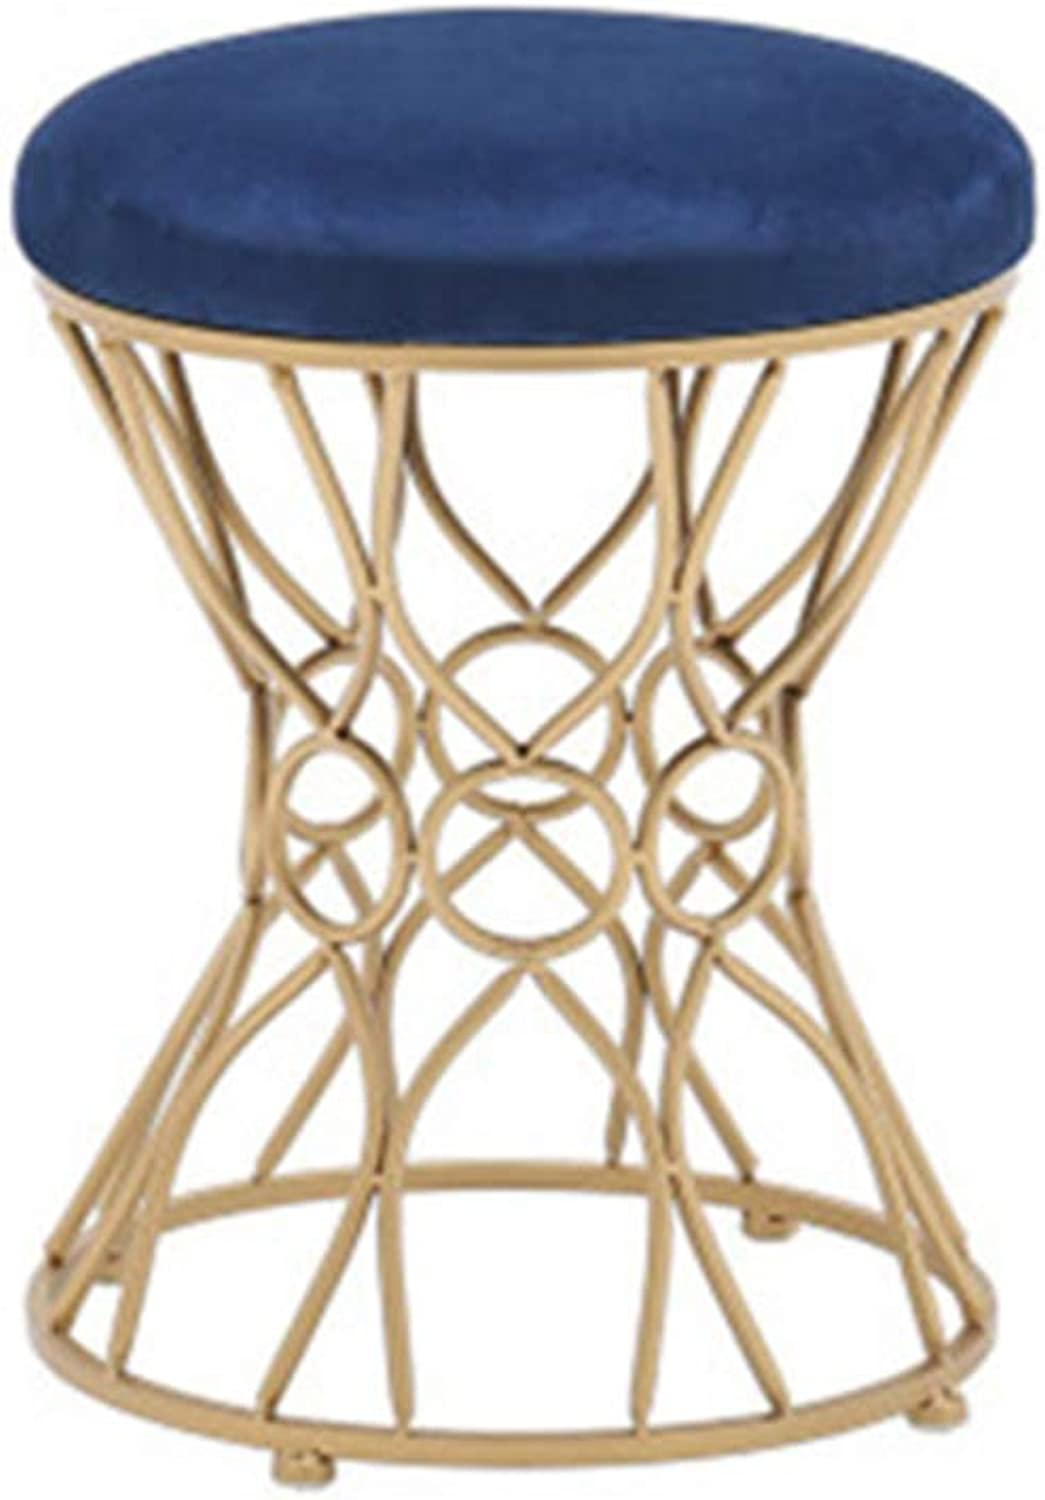 Stool Nordic Stool Home Fabric shoes Bench Makeup Round Stool Bedroom Living Room,D,35  45CM